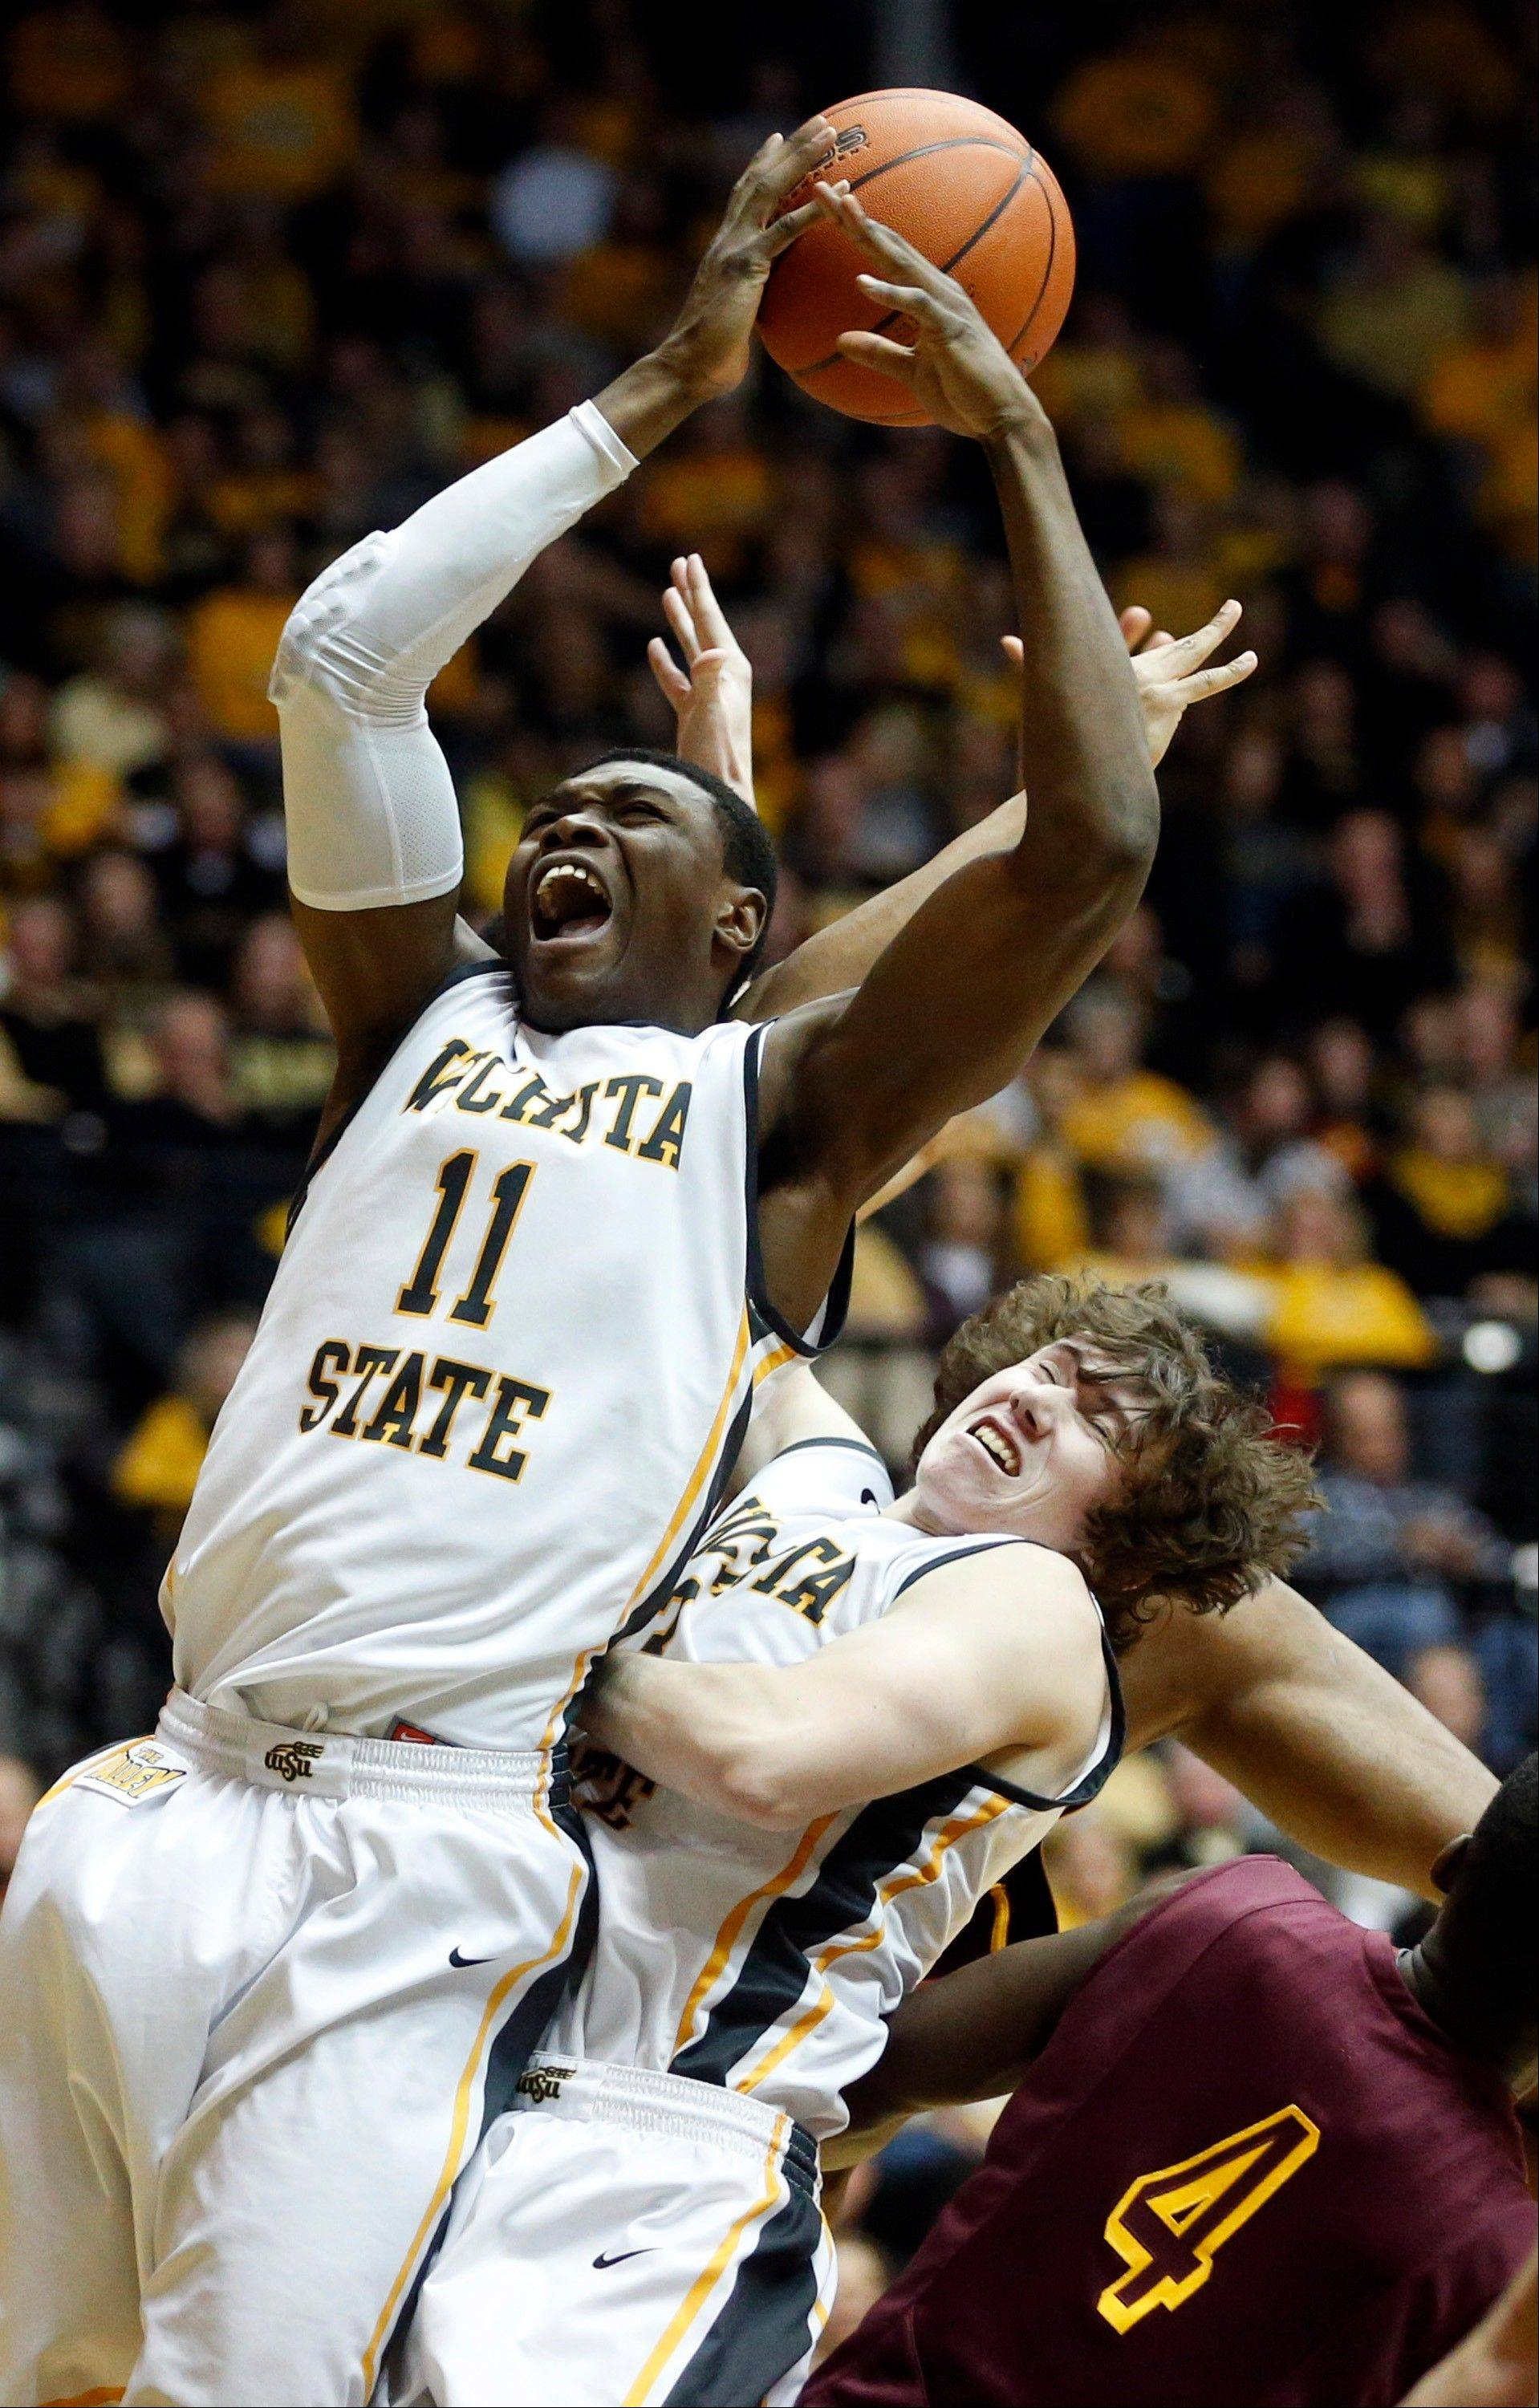 Wichita State forward Cleanthony Early (11) and Evan Wessel (3) go up for a rebound against Loyola during Tuesday night's game in Wichita, Kan.